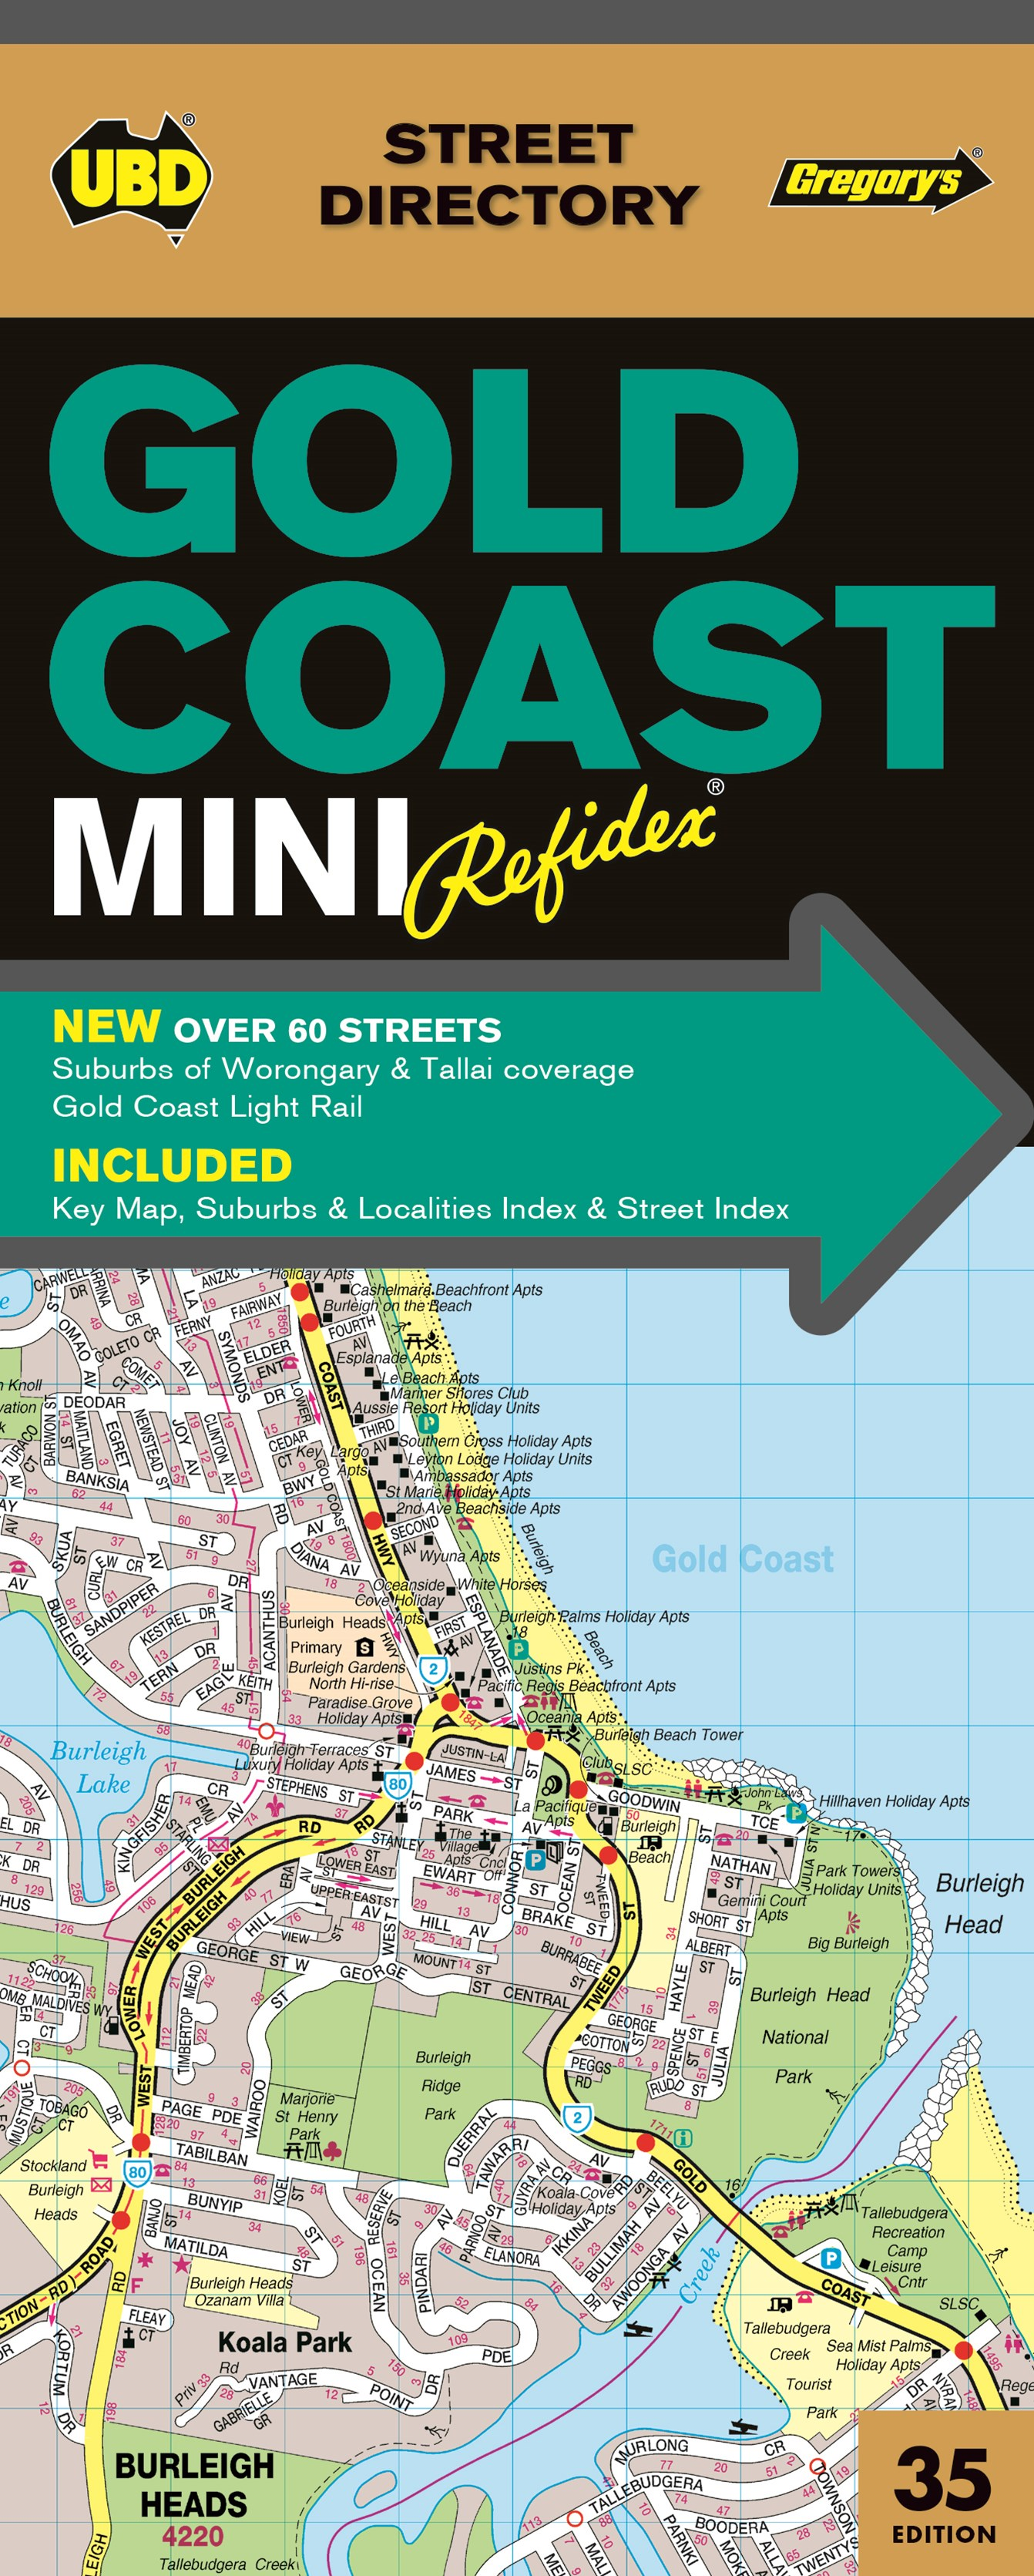 Gold Coast Mini Refidex 35th